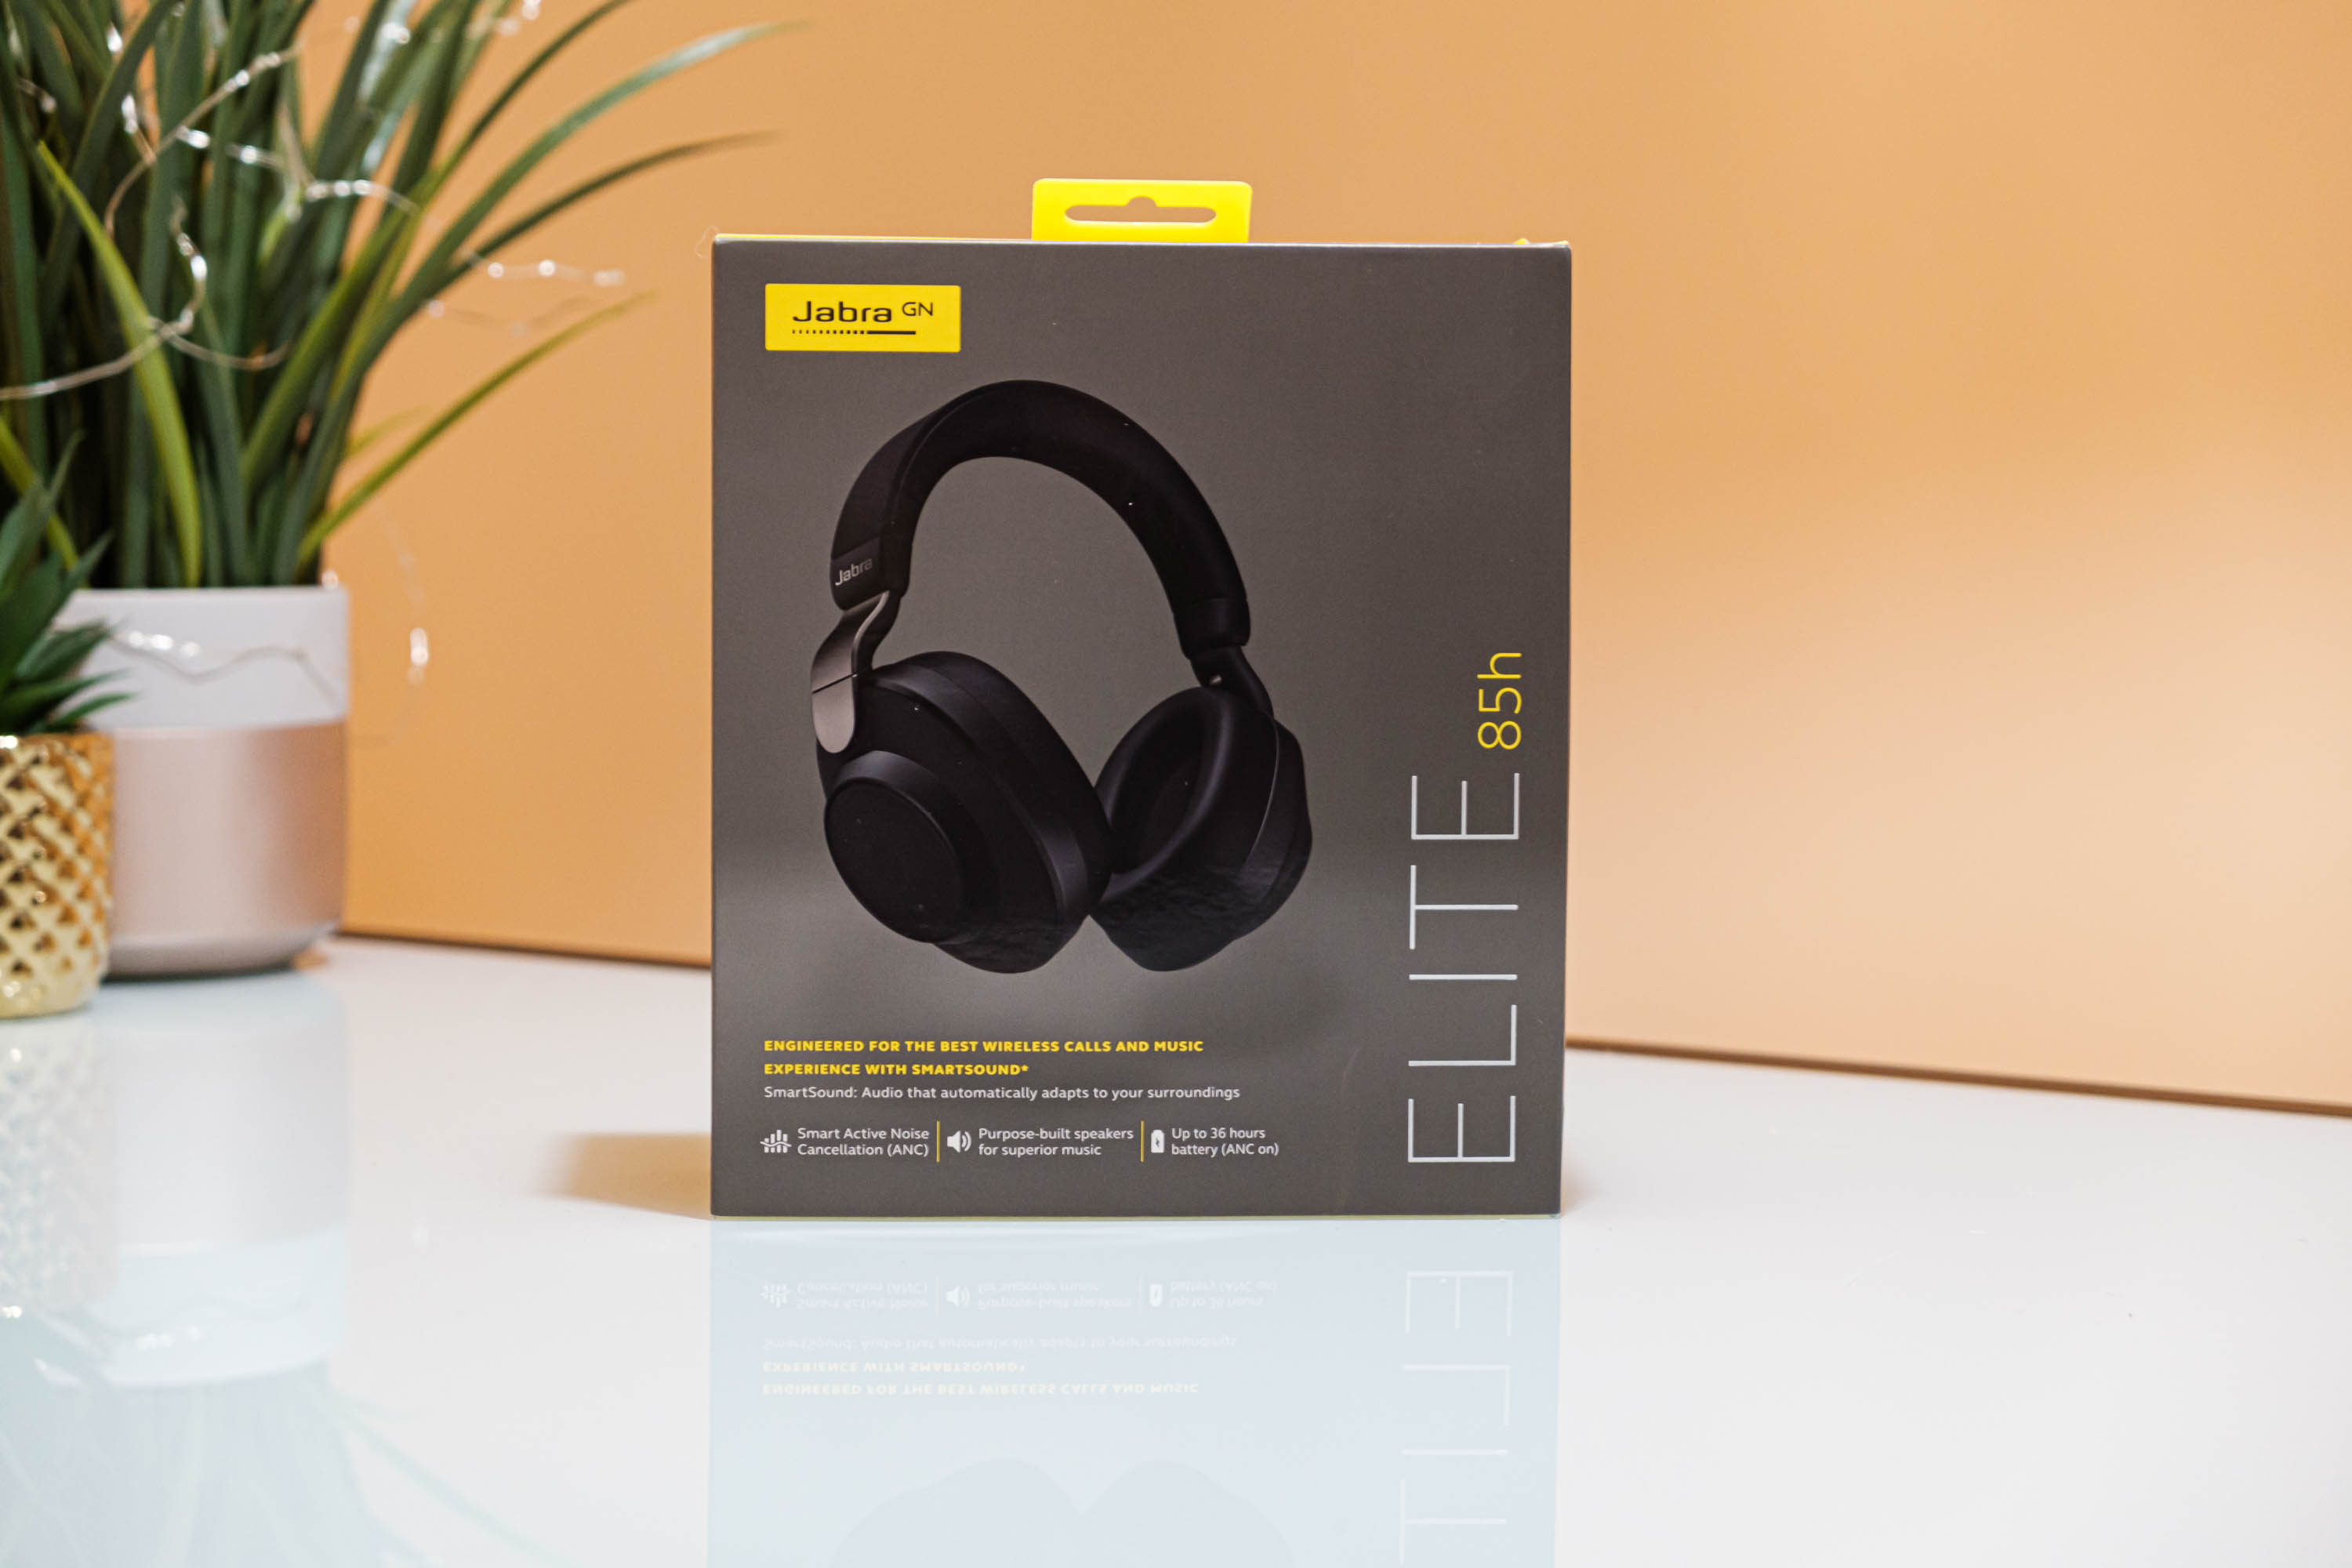 Casque Jabra Elite 85h: excellent